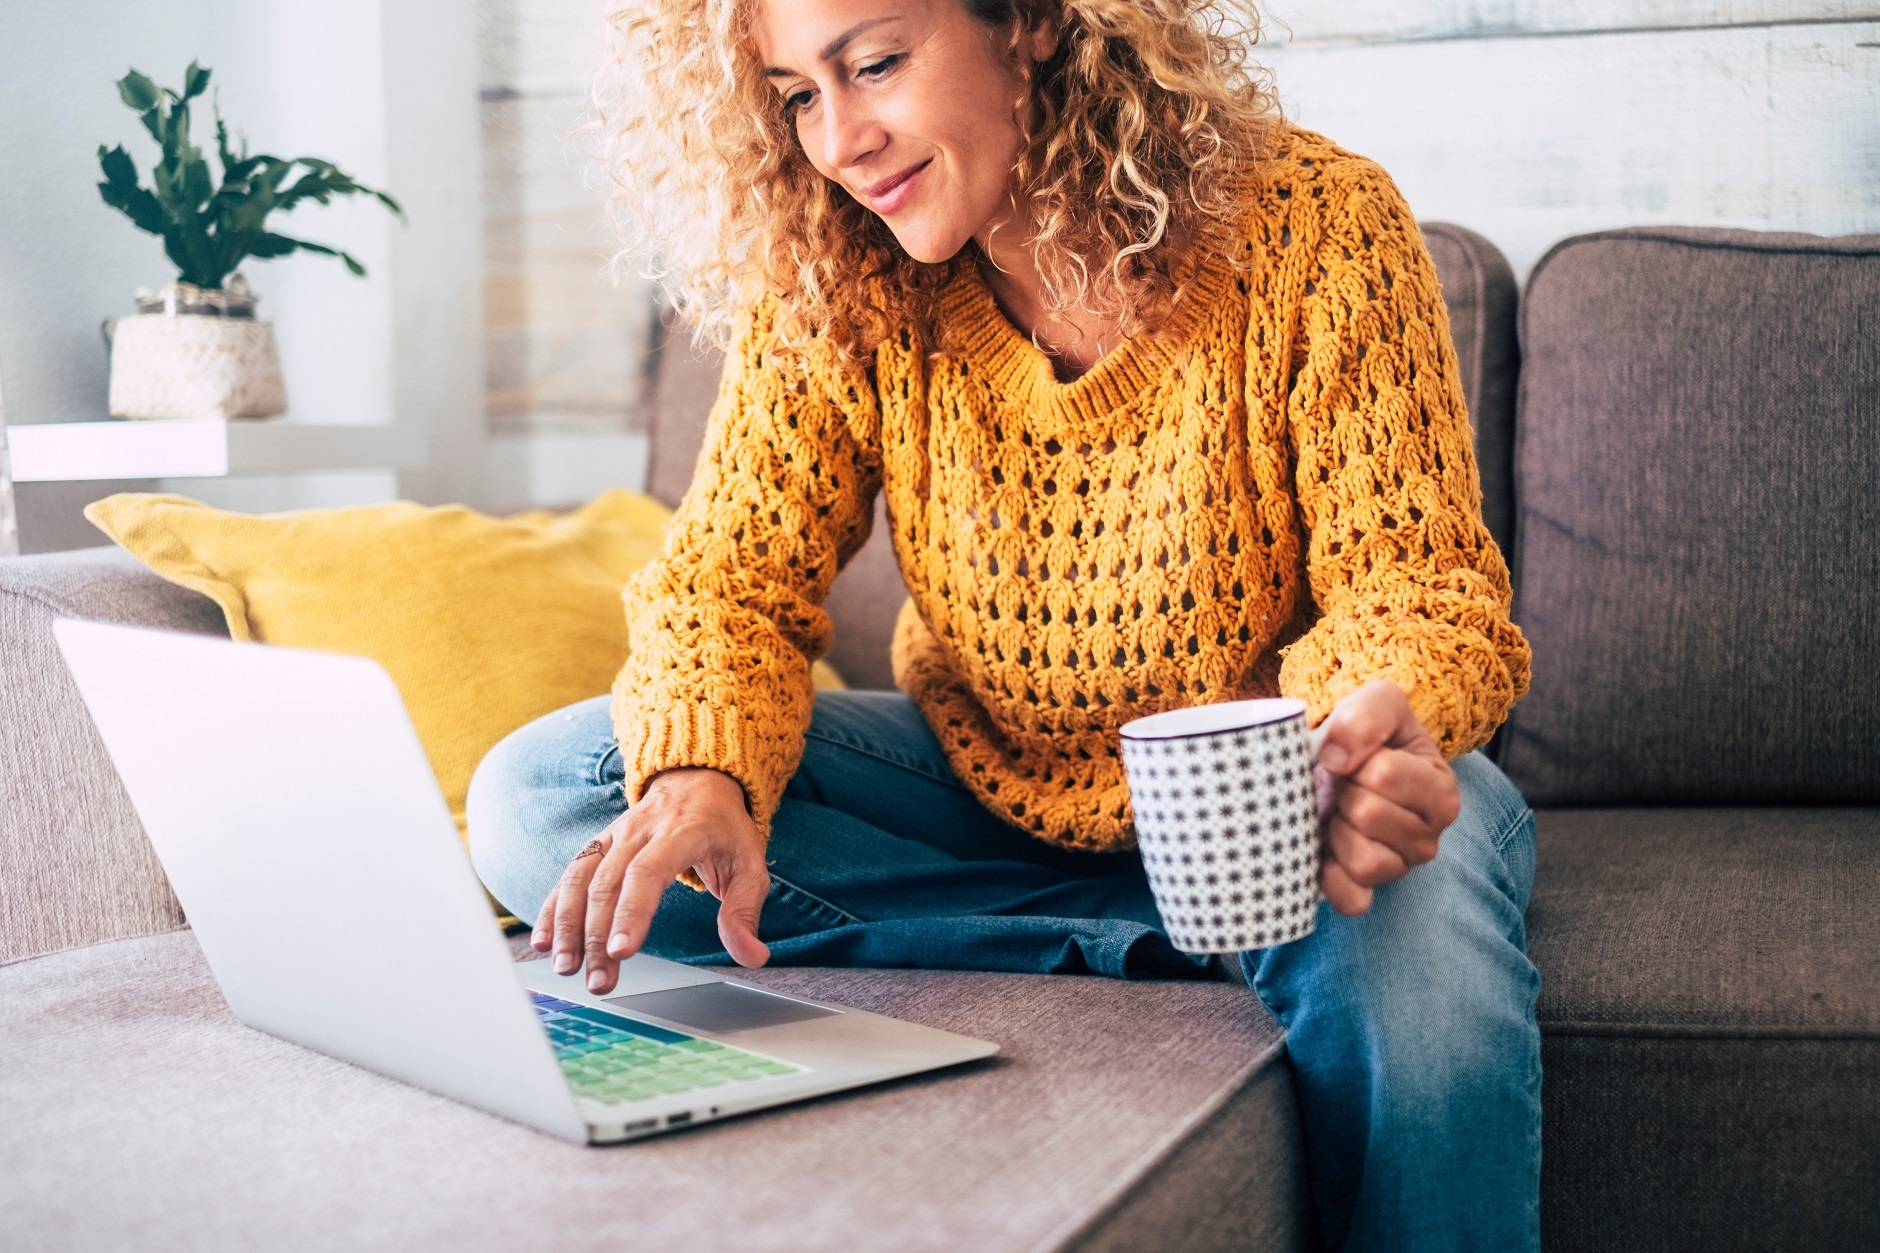 woman laughing while on laptop